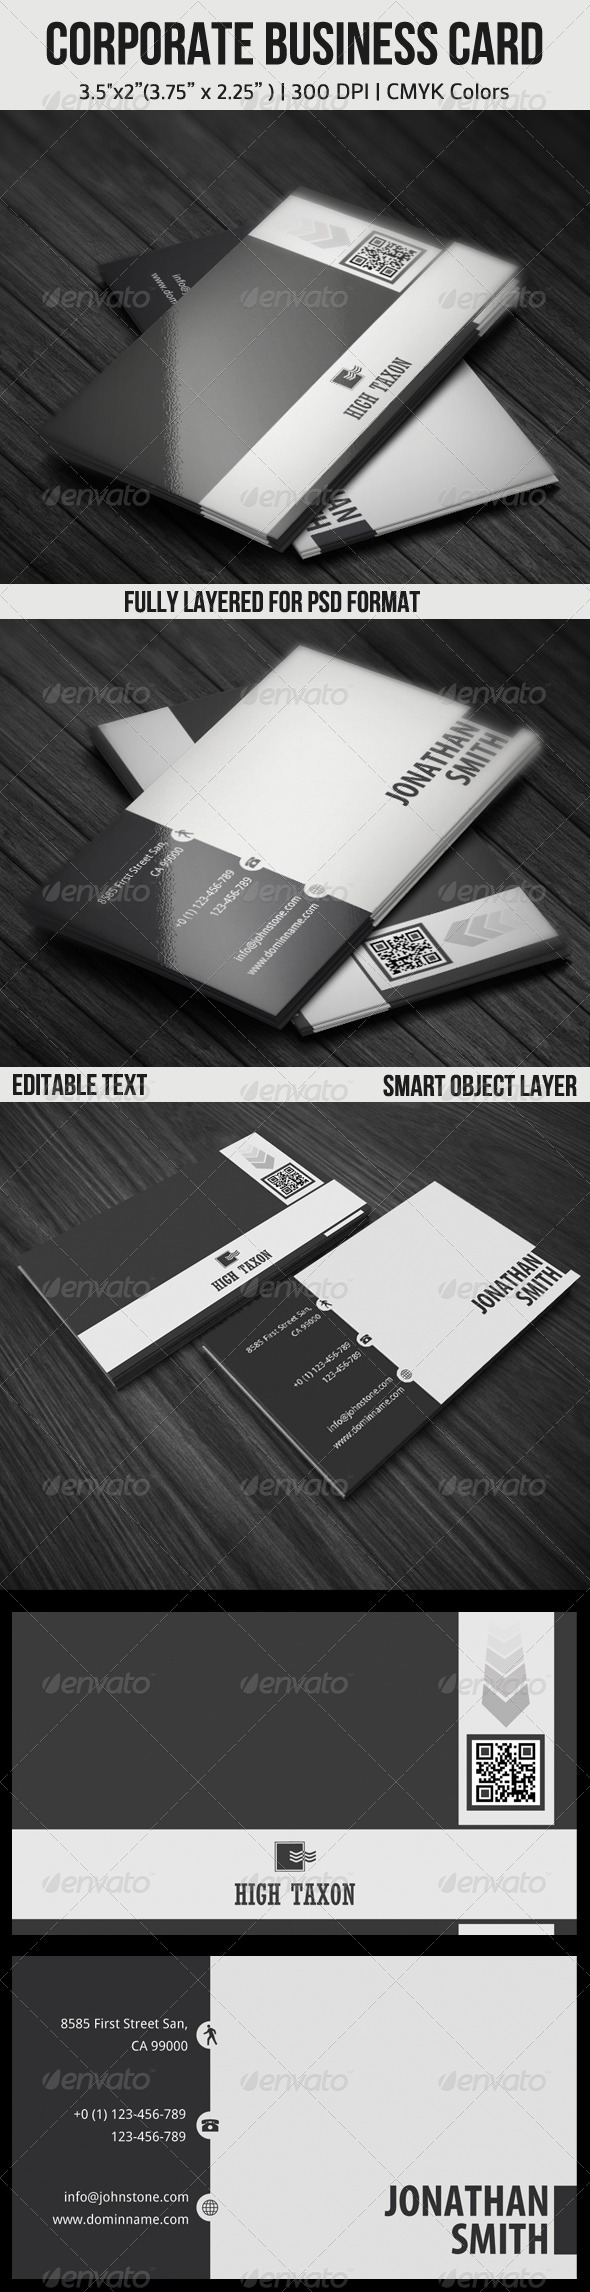 GraphicRiver Corporate Business Card 4467332